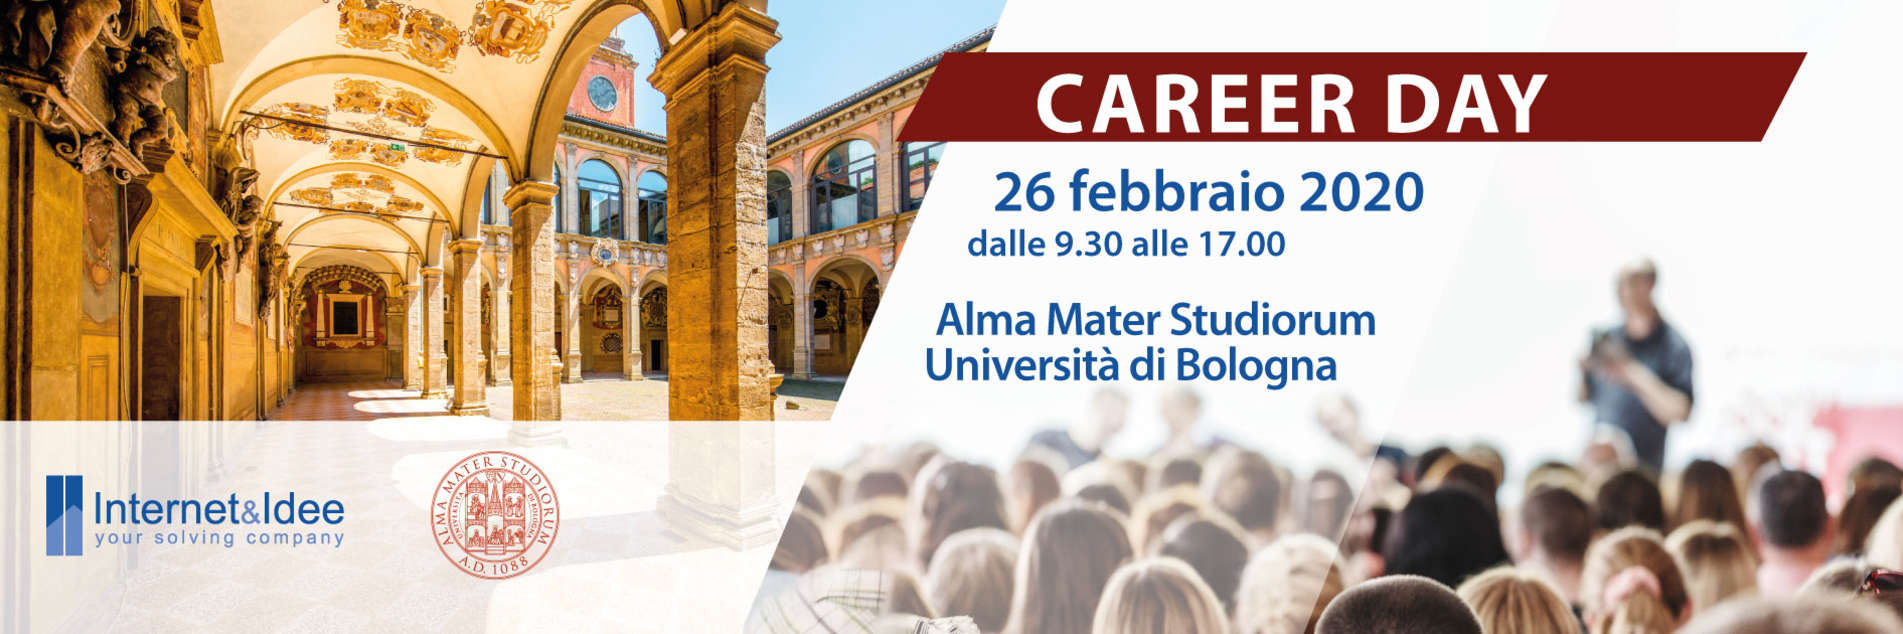 Internet & Idee al Career Day 2020 dell'Università di Bologna